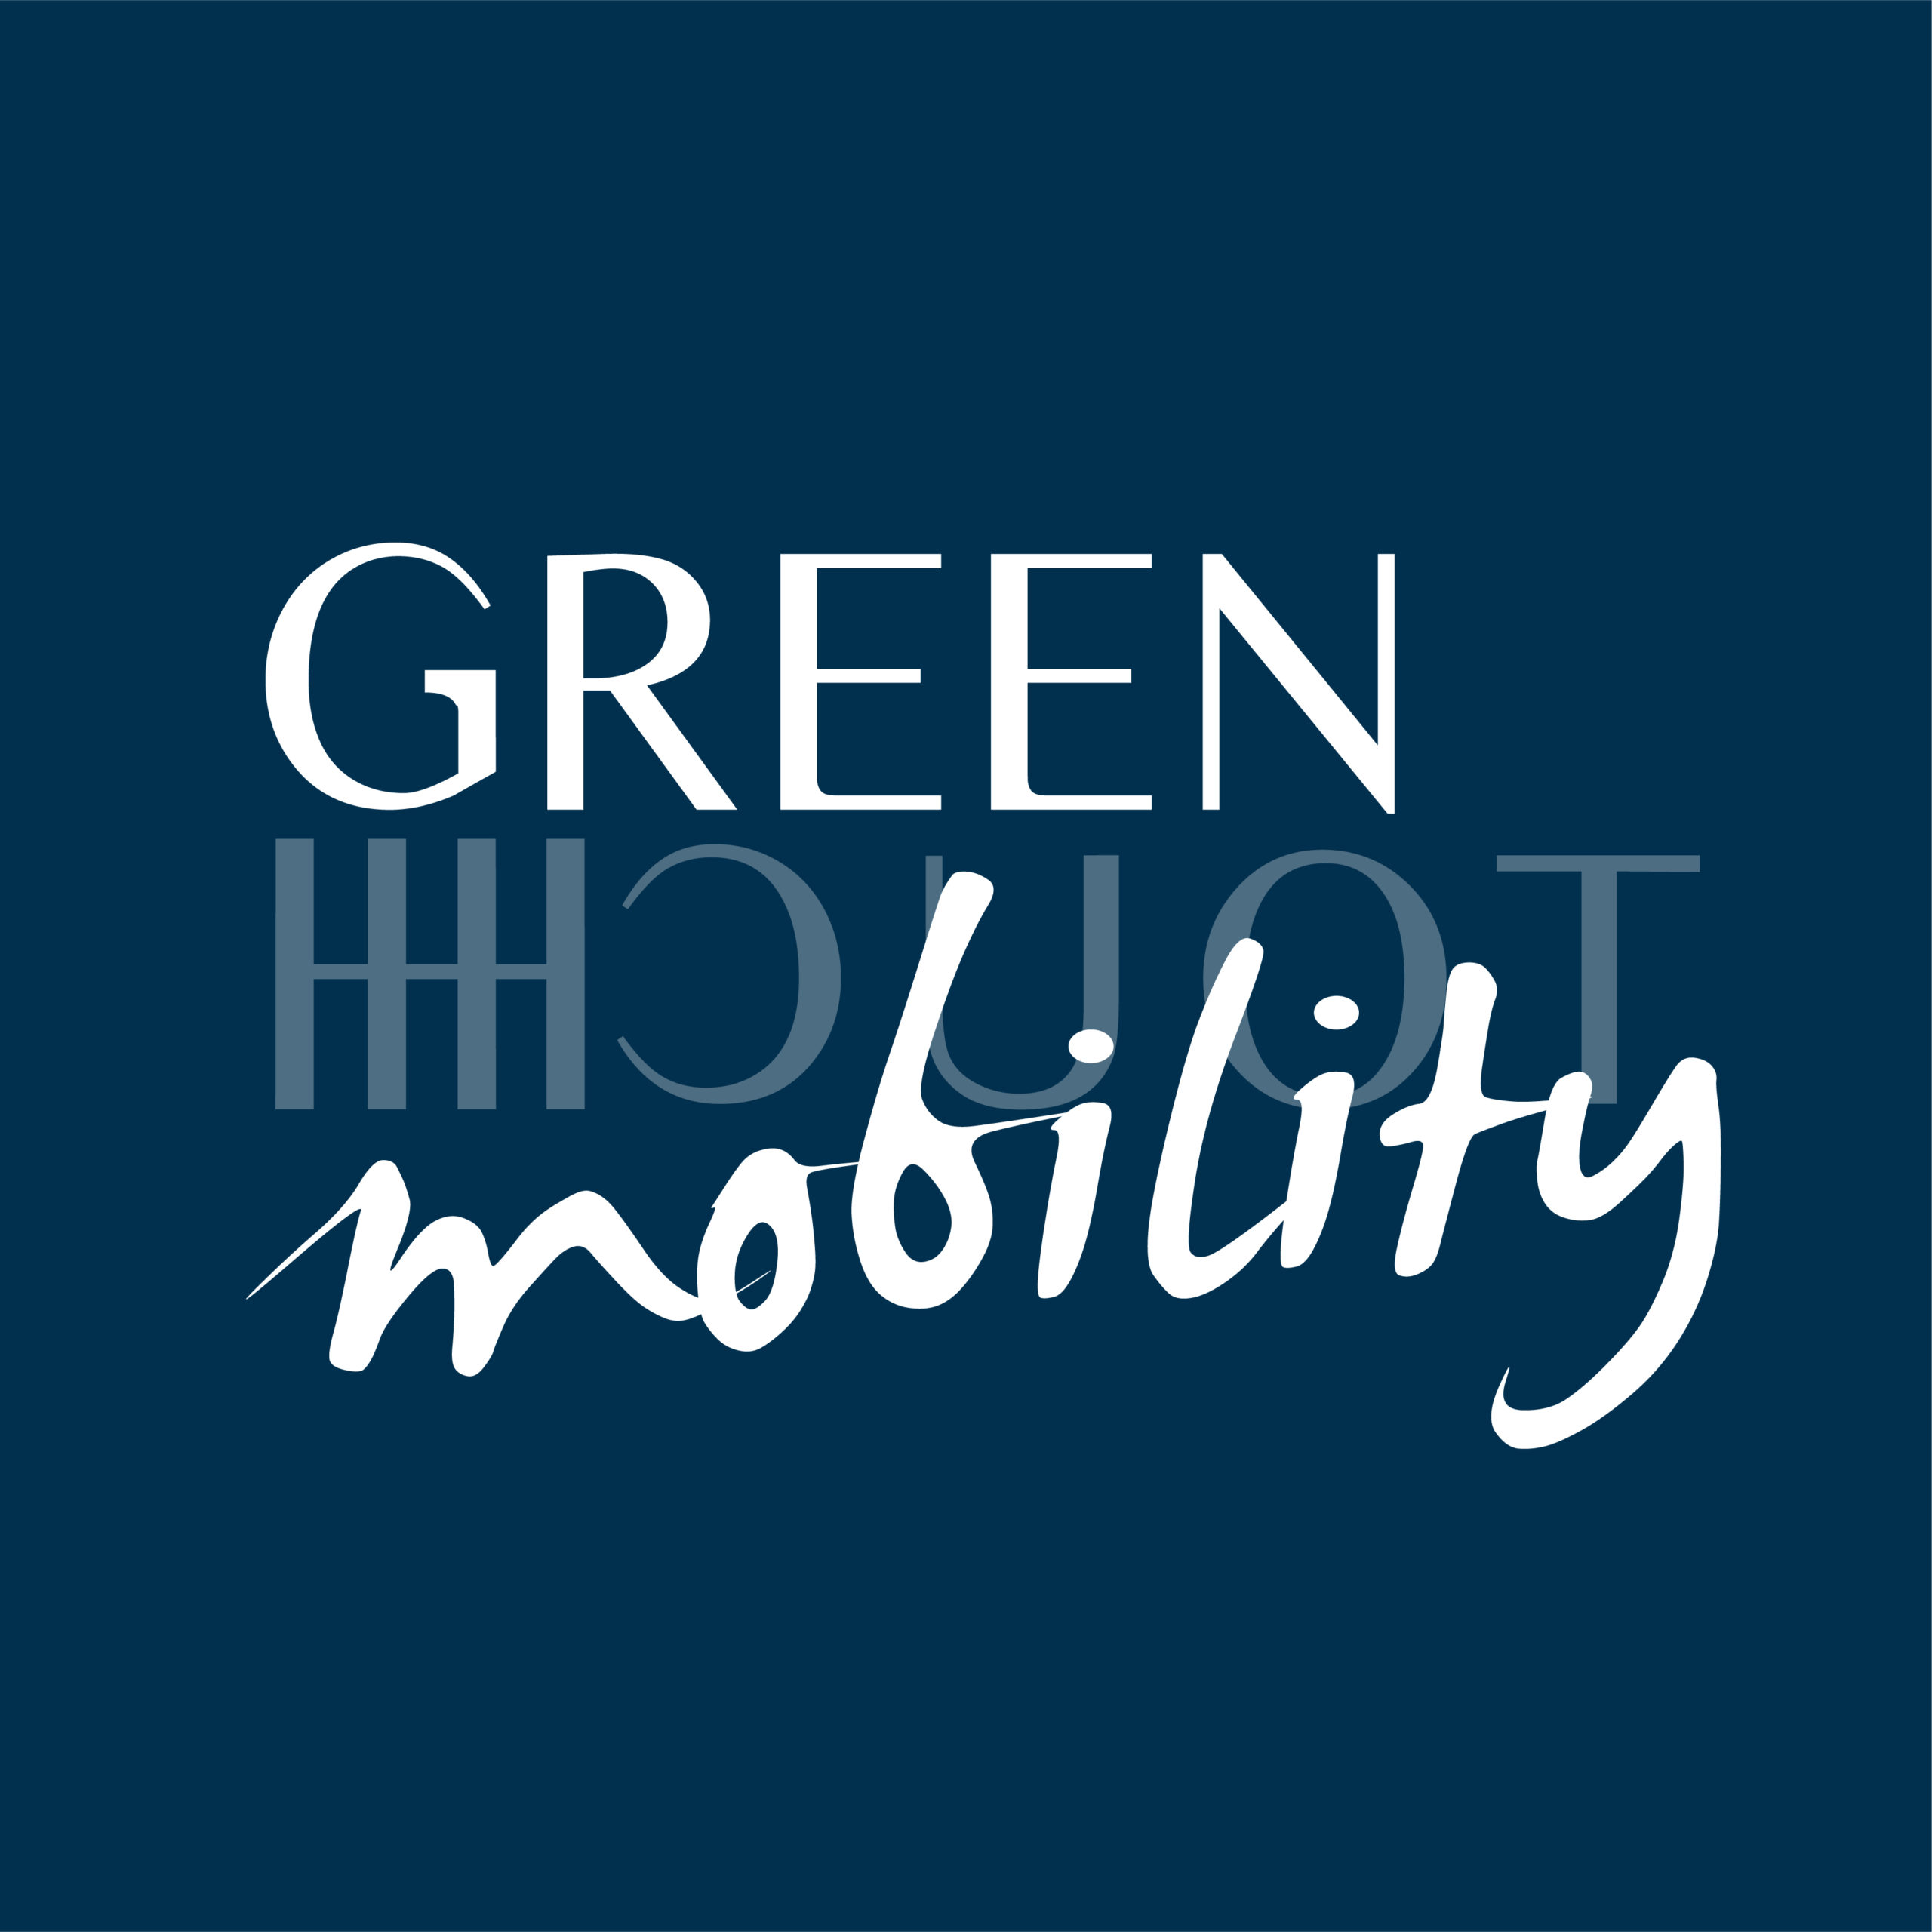 Green touch mobility